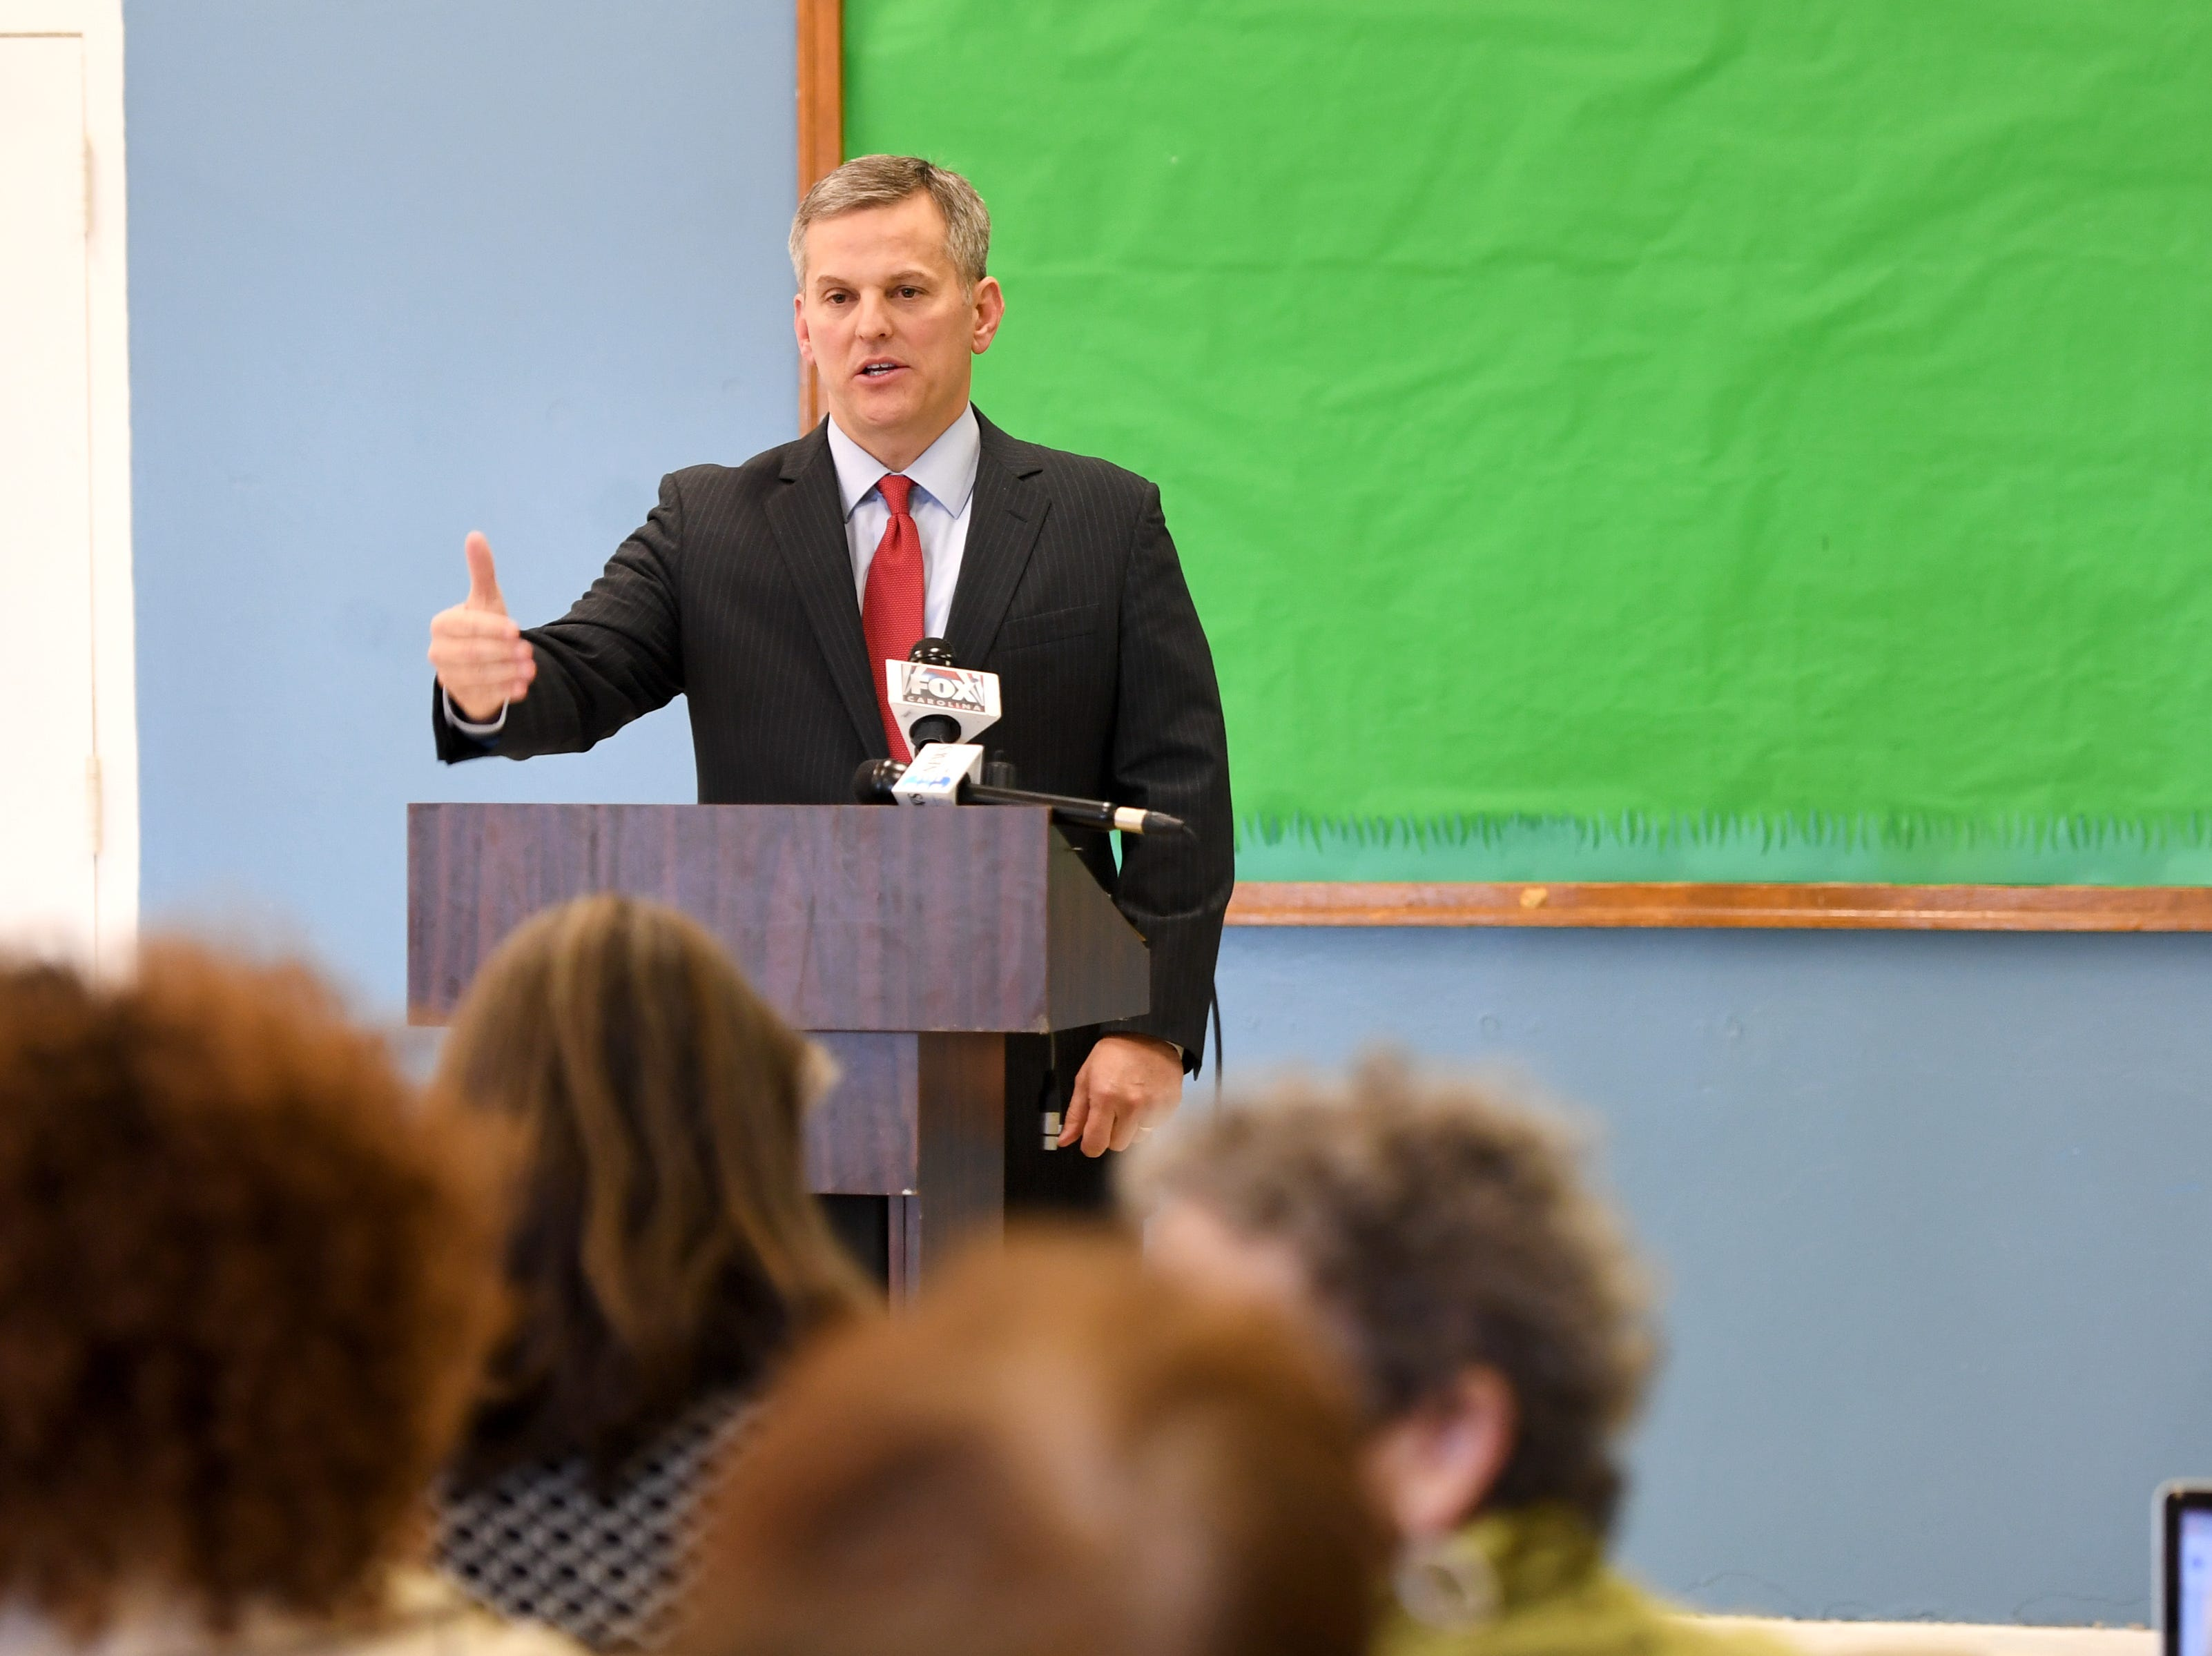 North Carolina Attorney General Josh Stein announces that he does not object to HCA's purchase of Mission Health in a press conference at the Murphy-Oakley Recreation Center on Jan. 16, 2019.